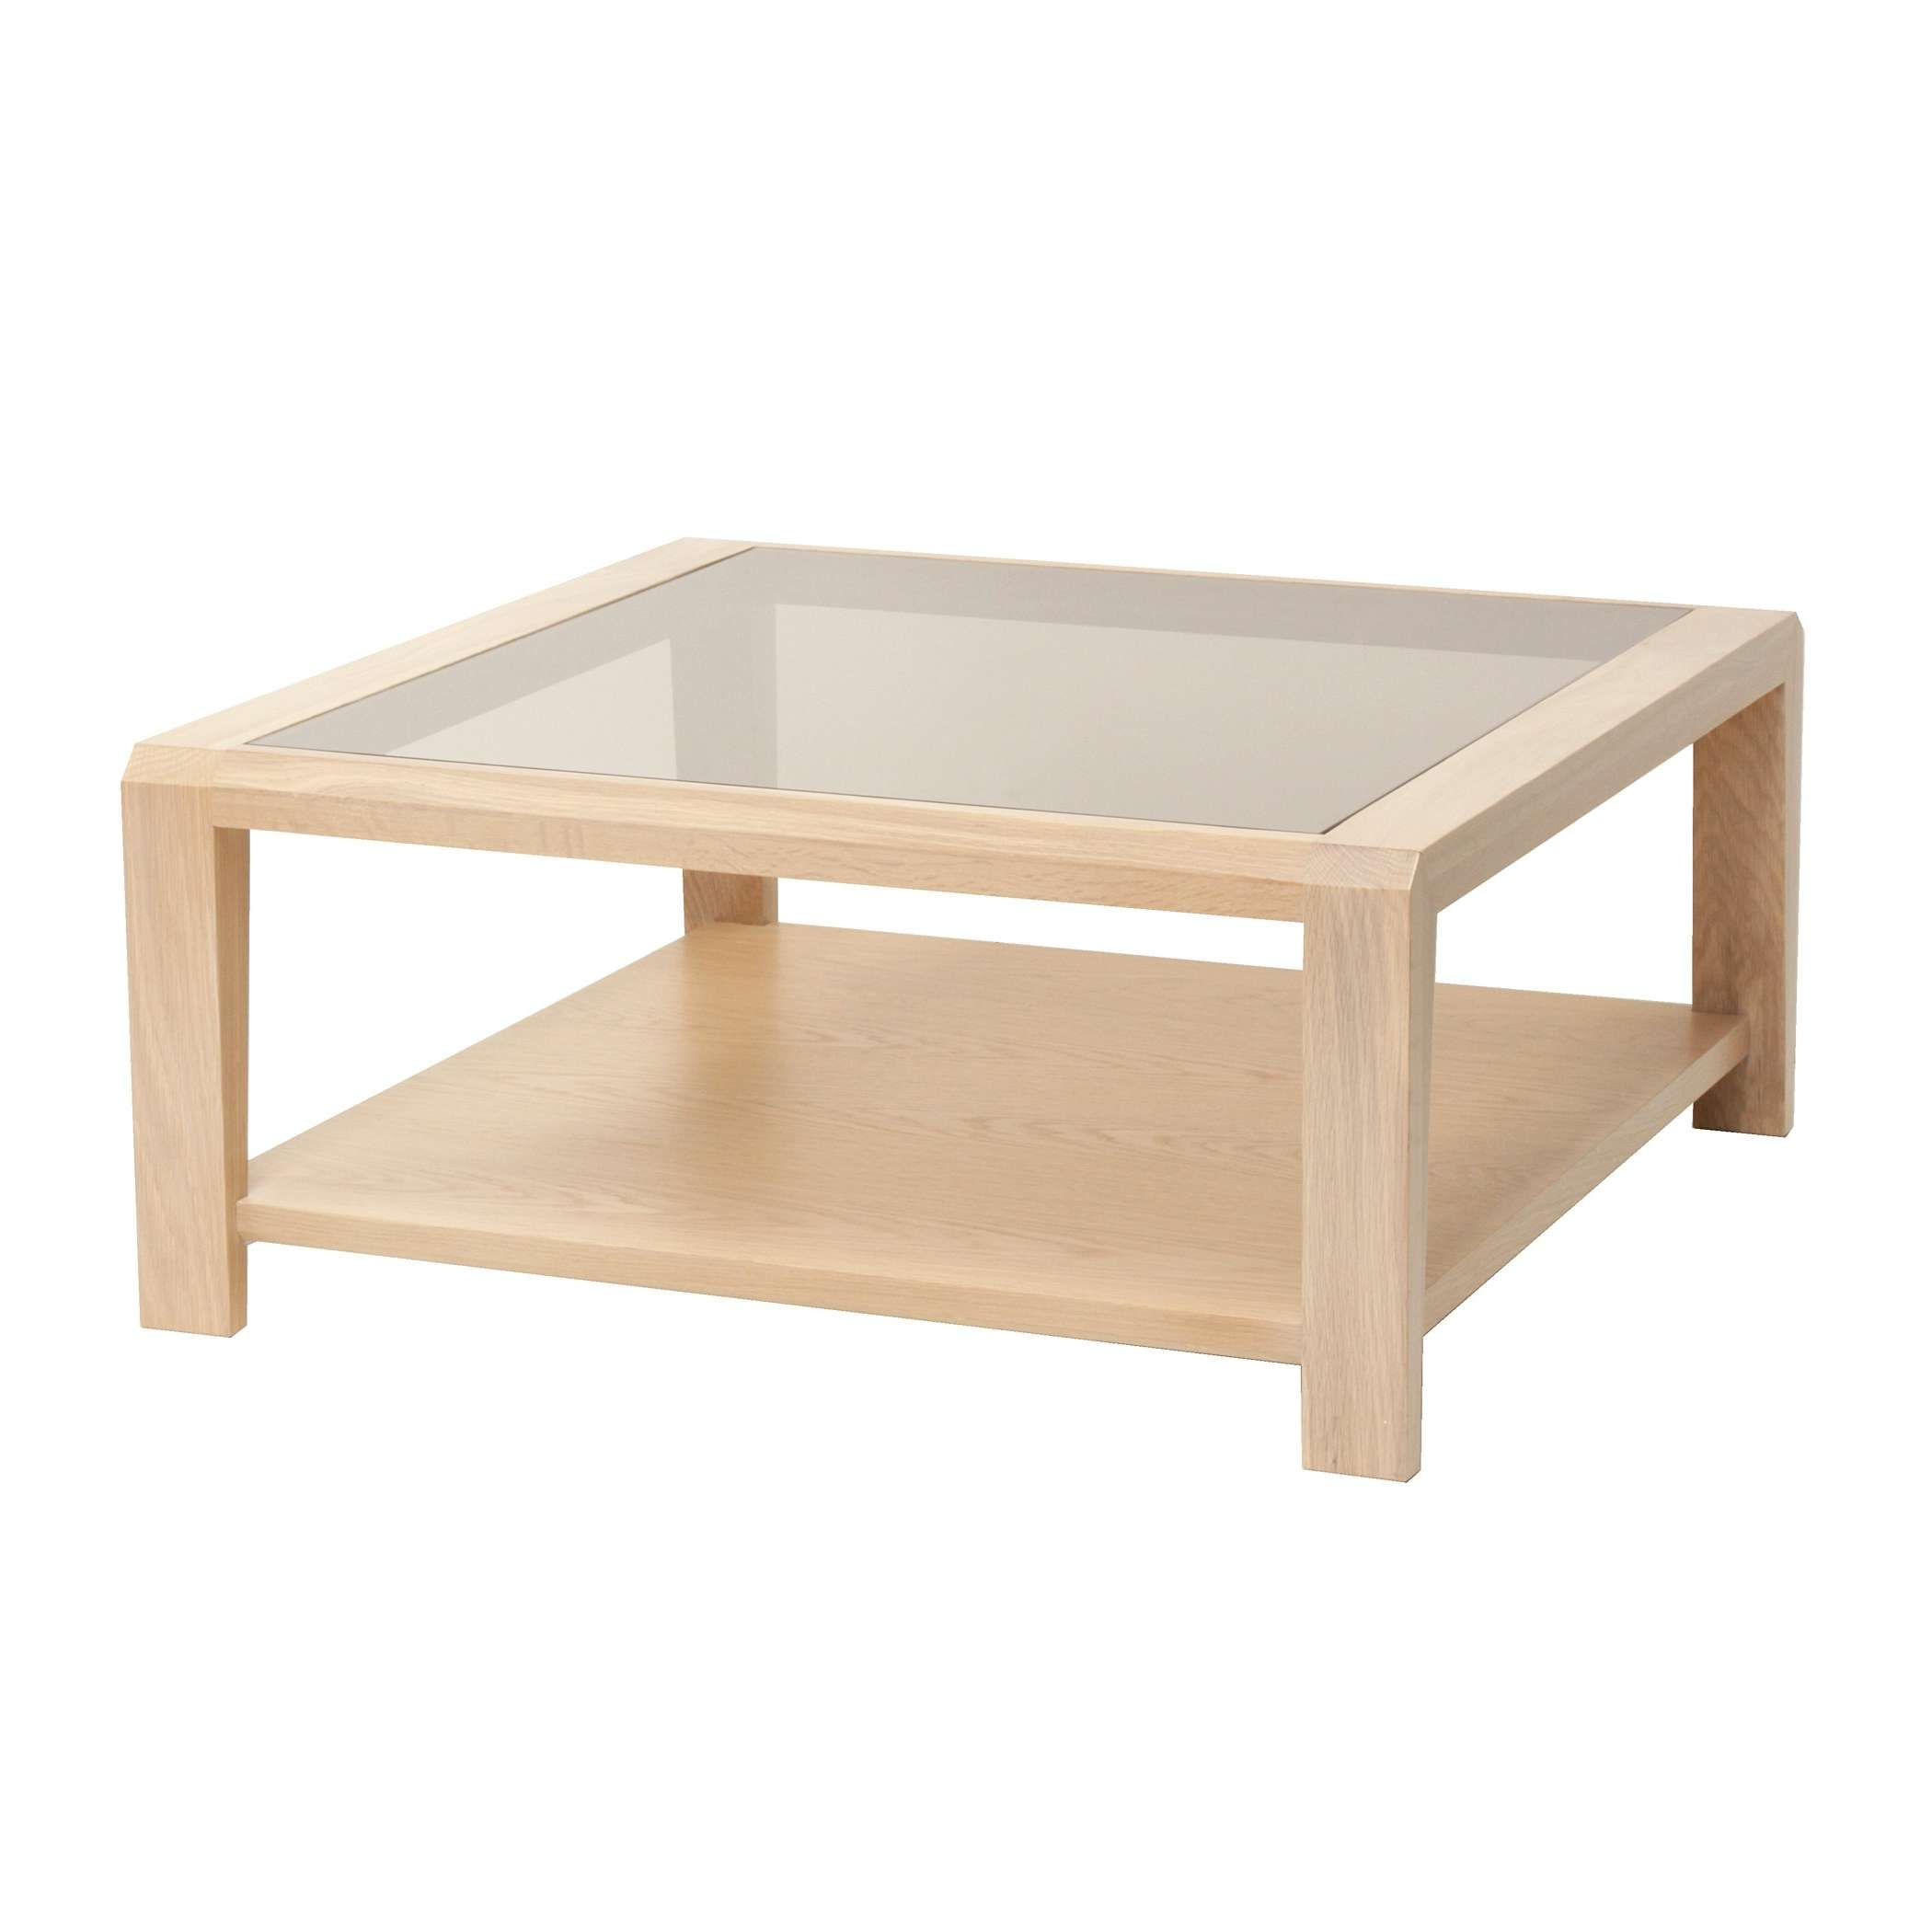 Favorite Large Square Glass Coffee Tables Inside Large Square Glass Coffee Table – Glass Coffee Table (View 8 of 20)